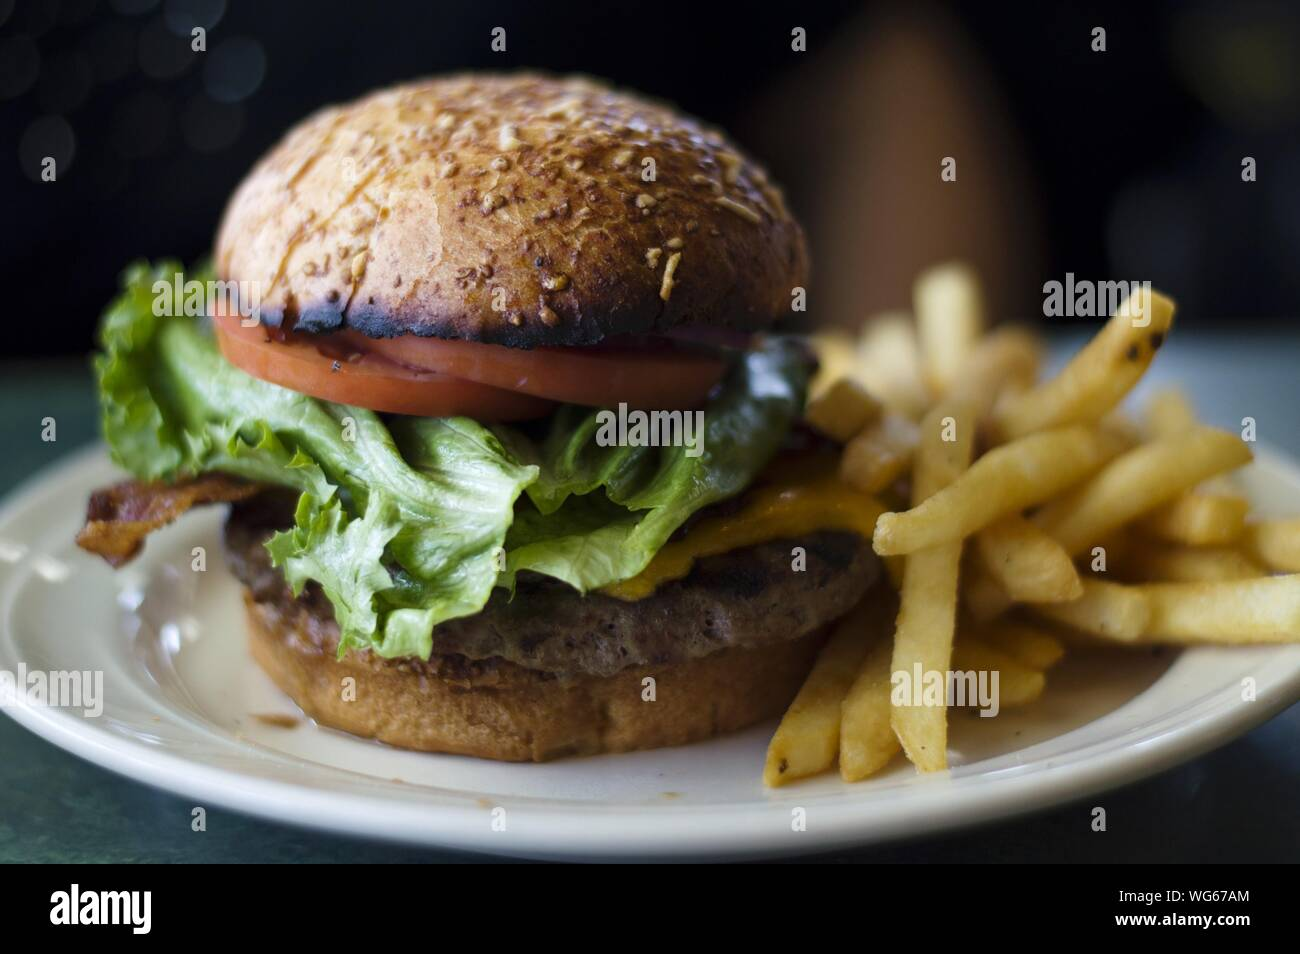 Close-up Of Burger With French Fries Served In Plate Stock Photo